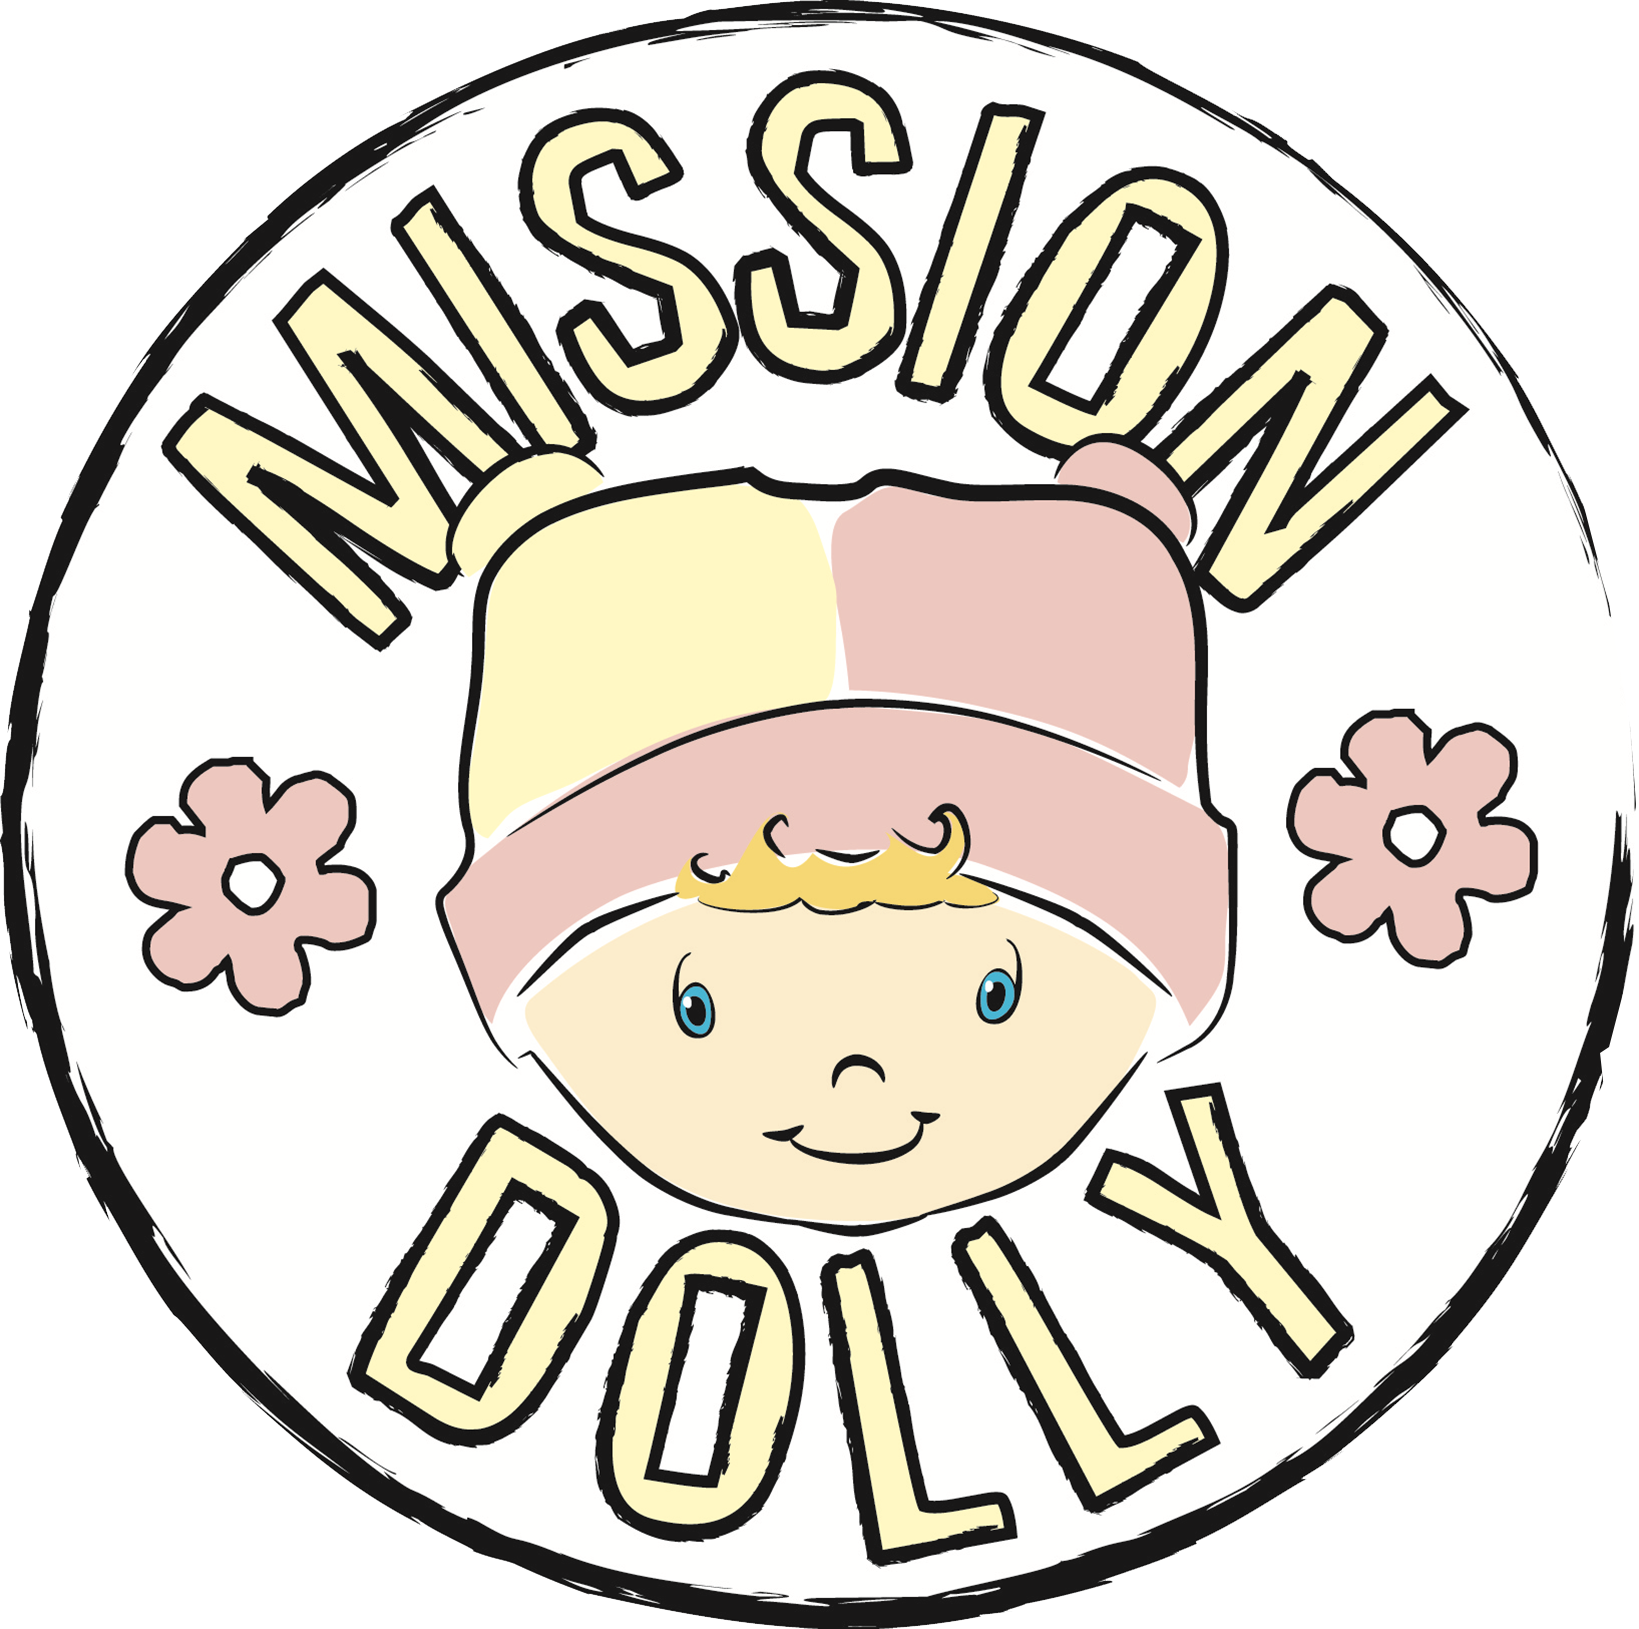 Mission-Dolly-copy